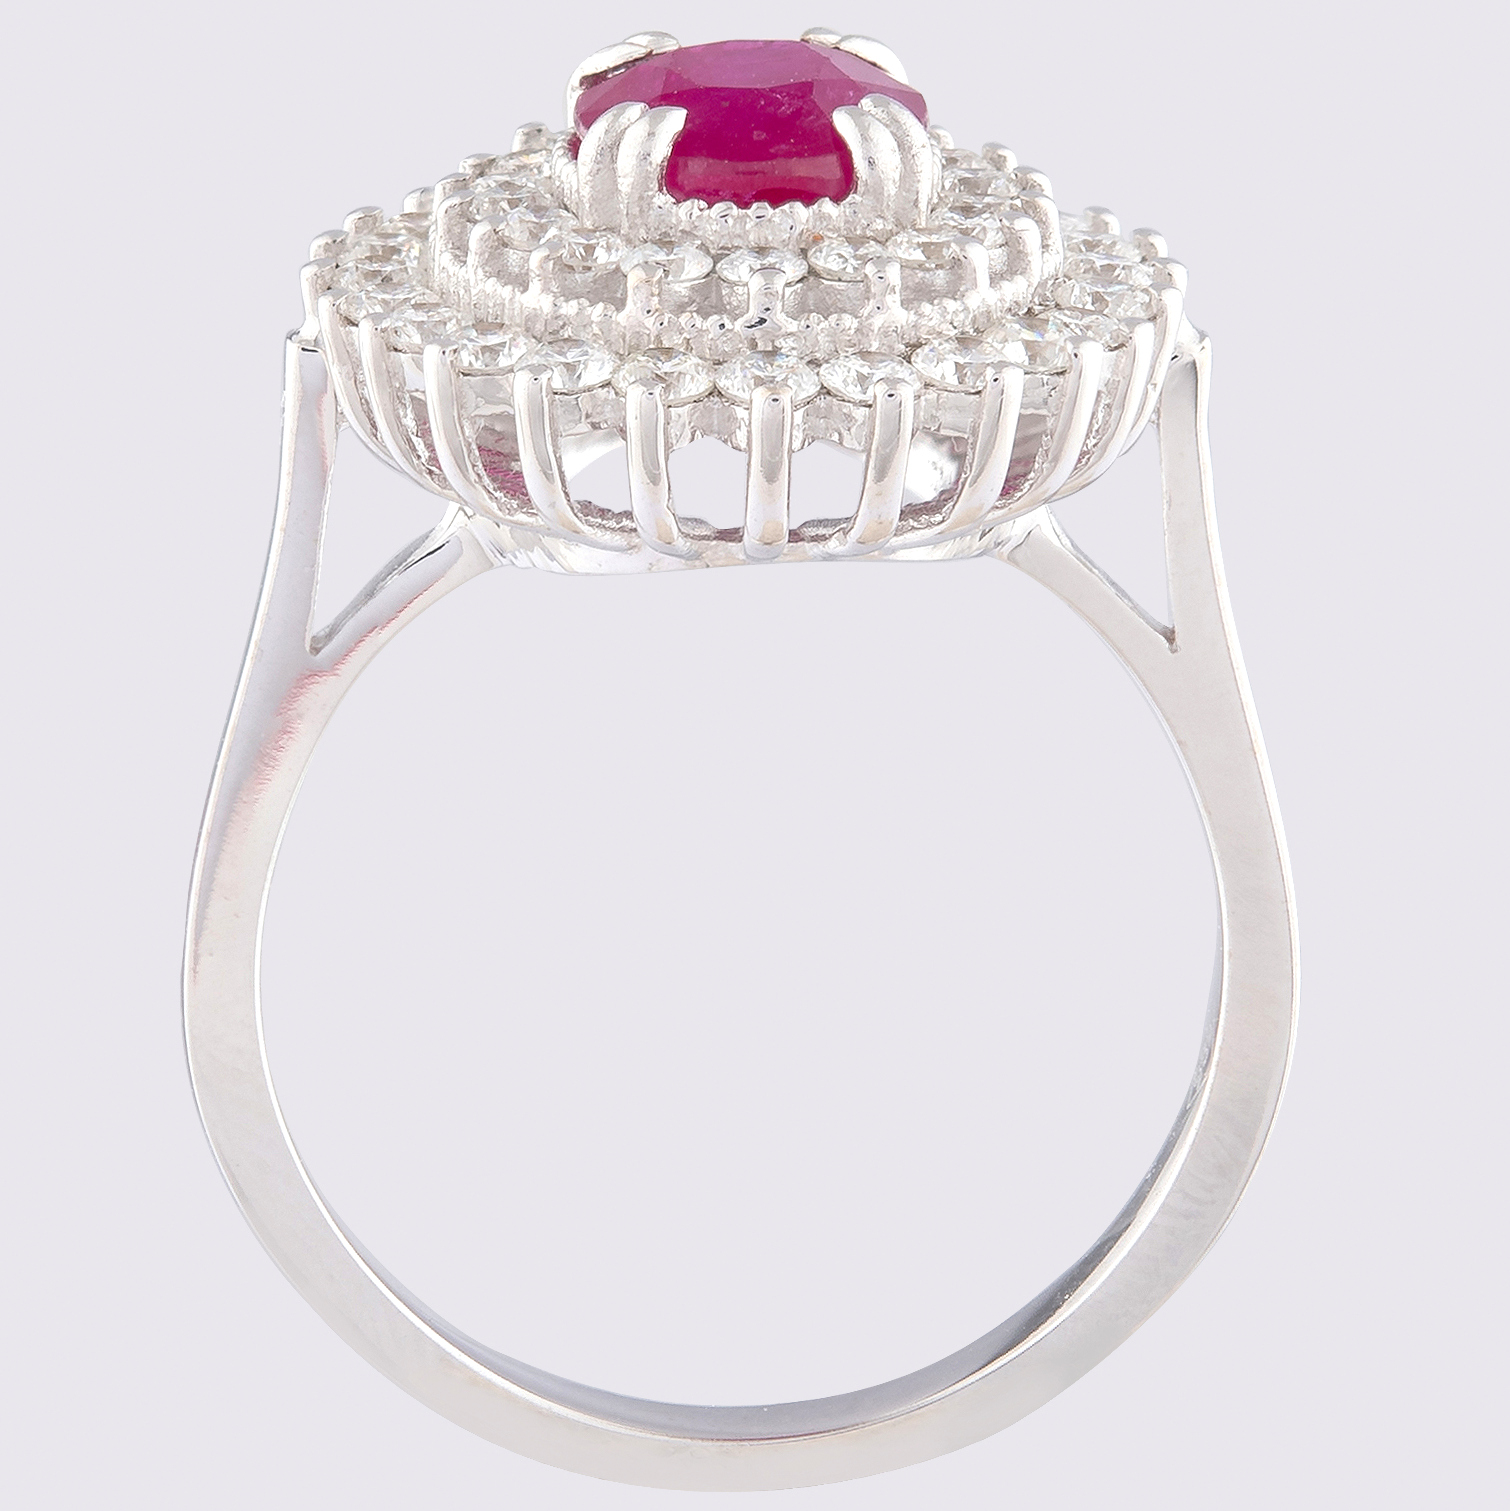 14K White Gold Cluster Ring 1.90 Ct. Natural Ruby - 1.00 Ct. Diamond - Image 2 of 4